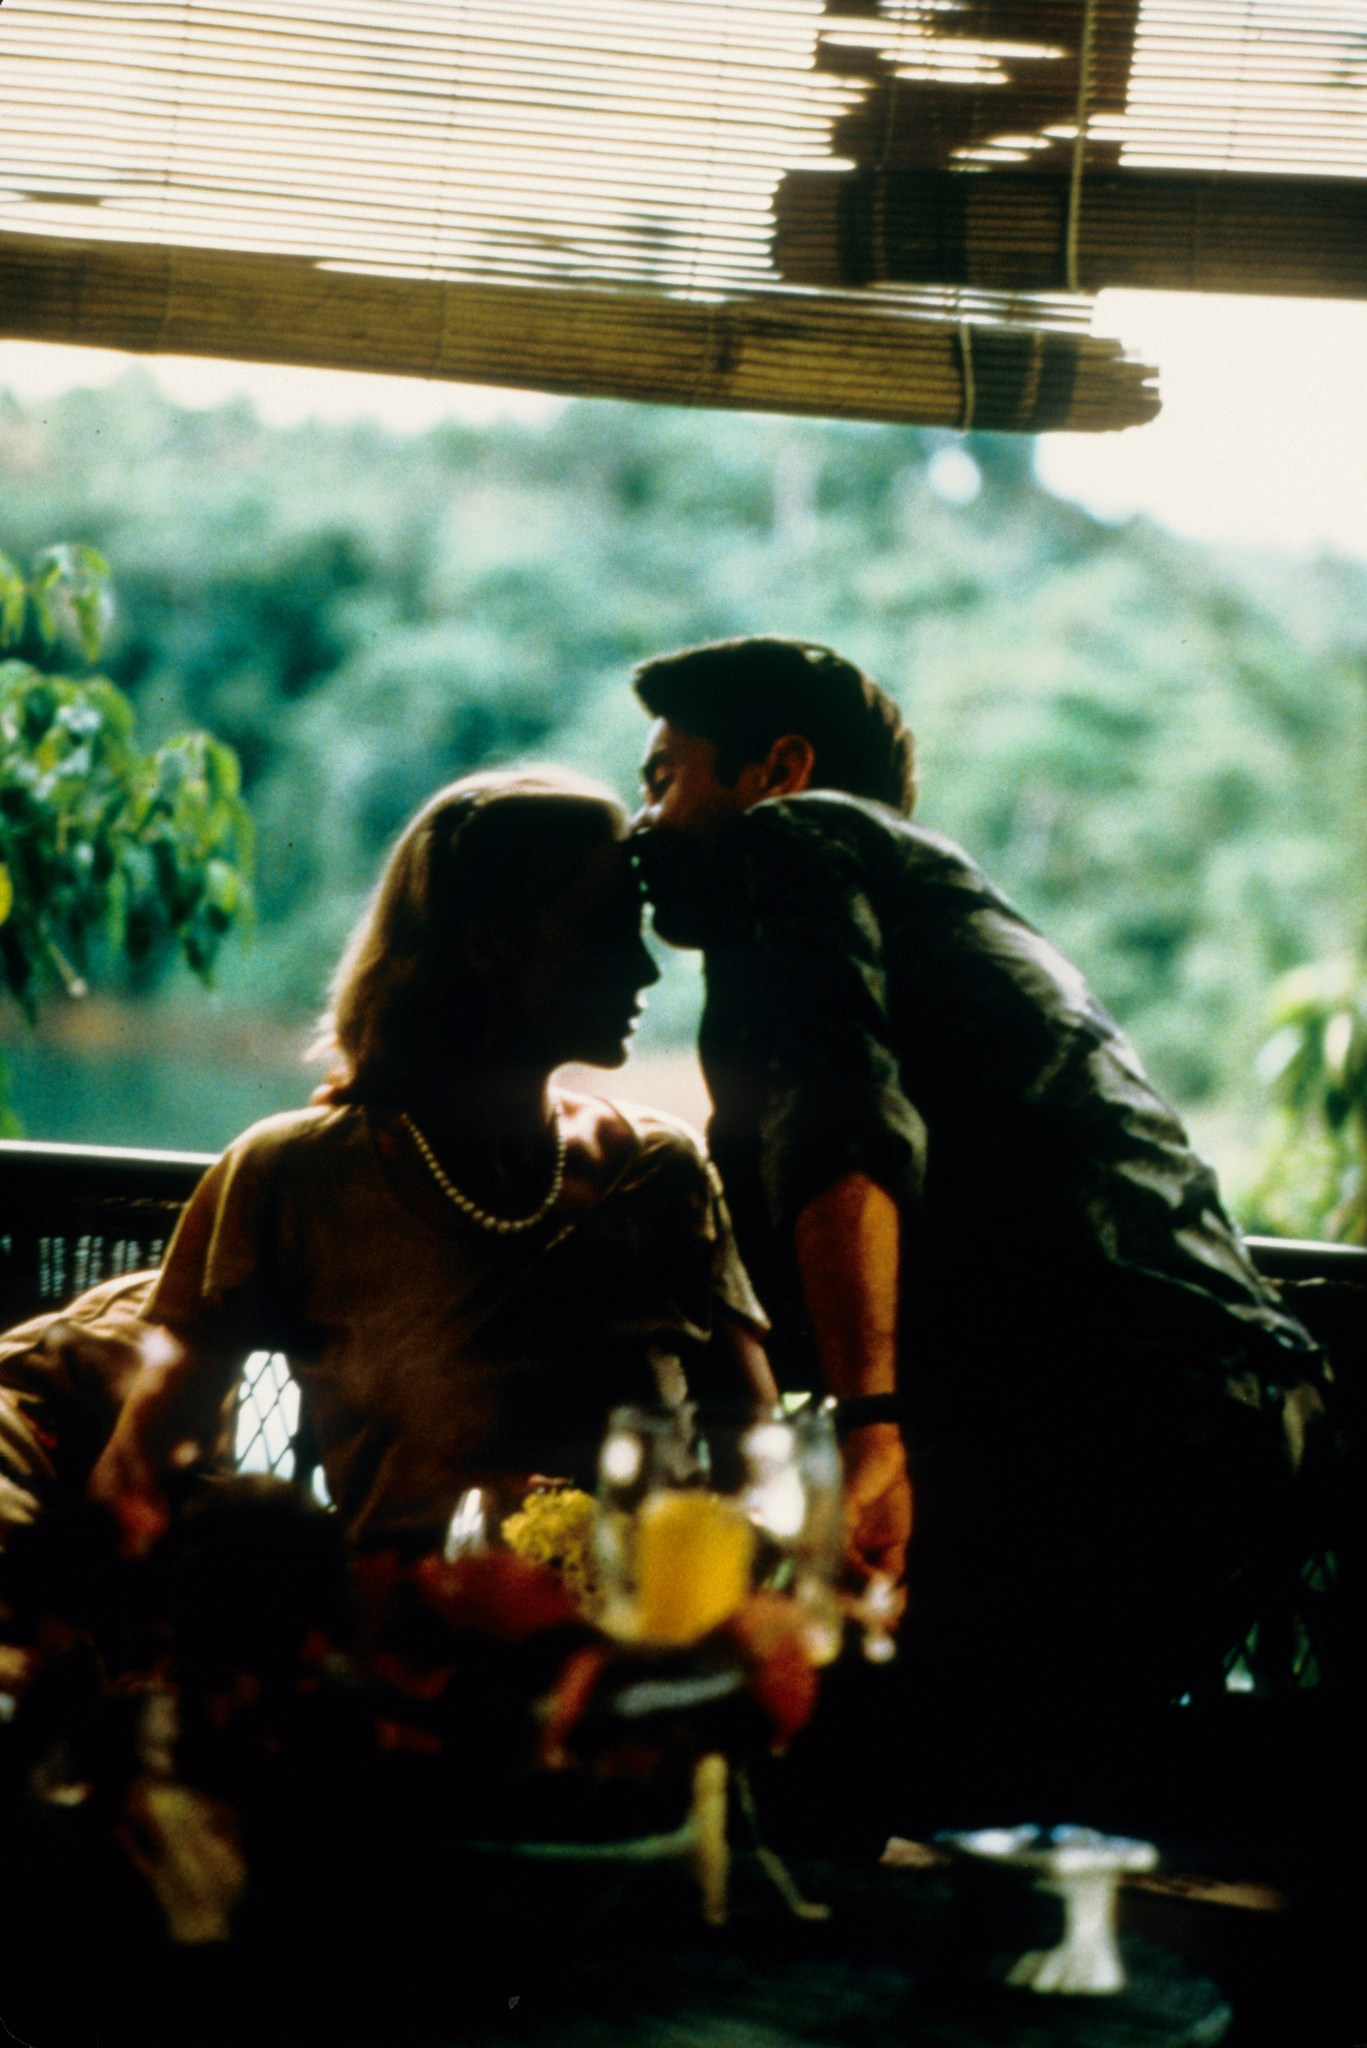 Martin Sheen and Aurore Clément in Apocalypse Now (1979)